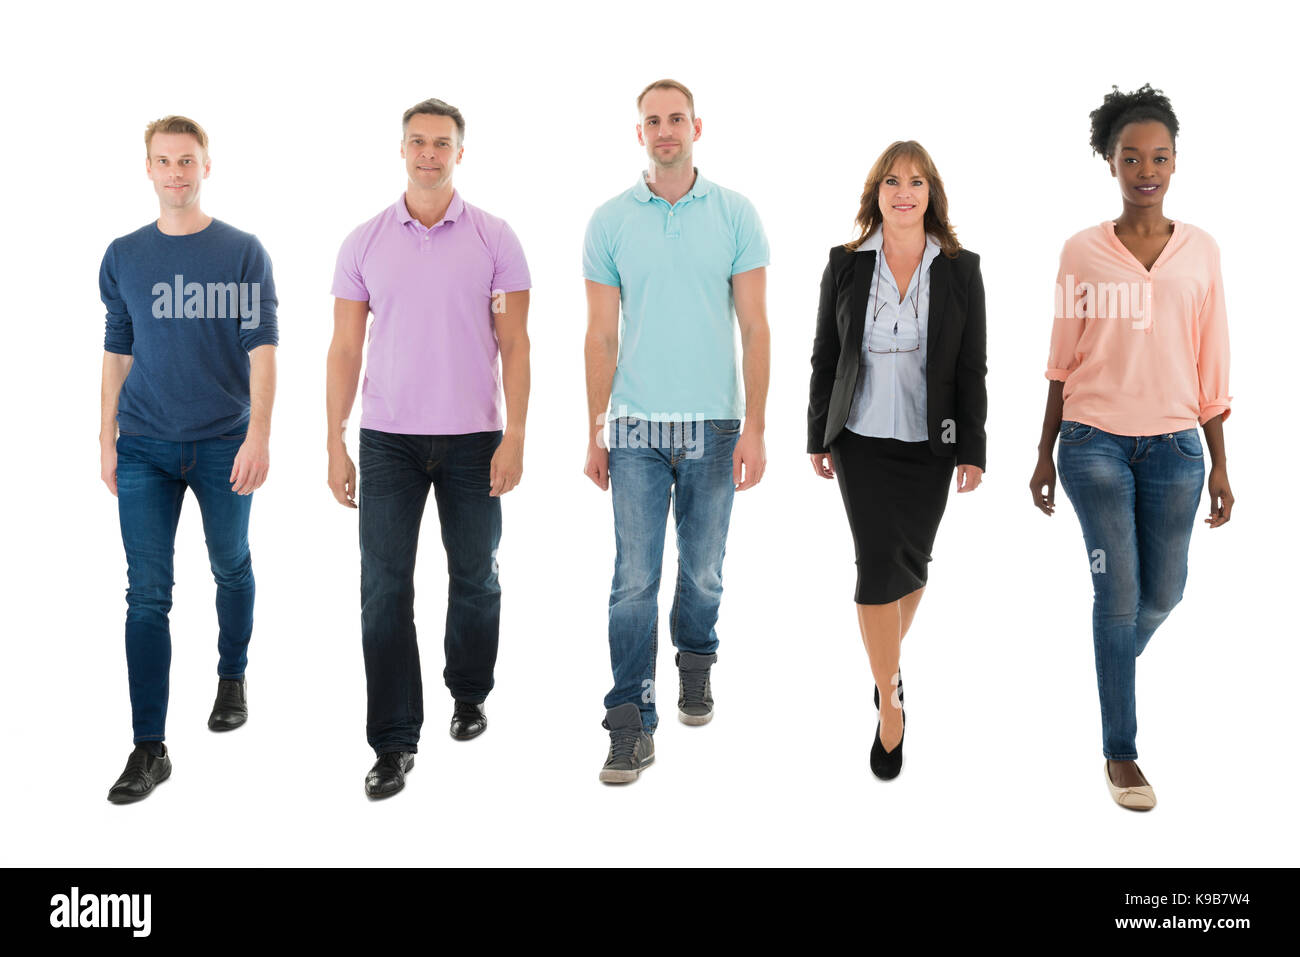 Full length portrait of creative business people walking with manager against white background - Stock Image